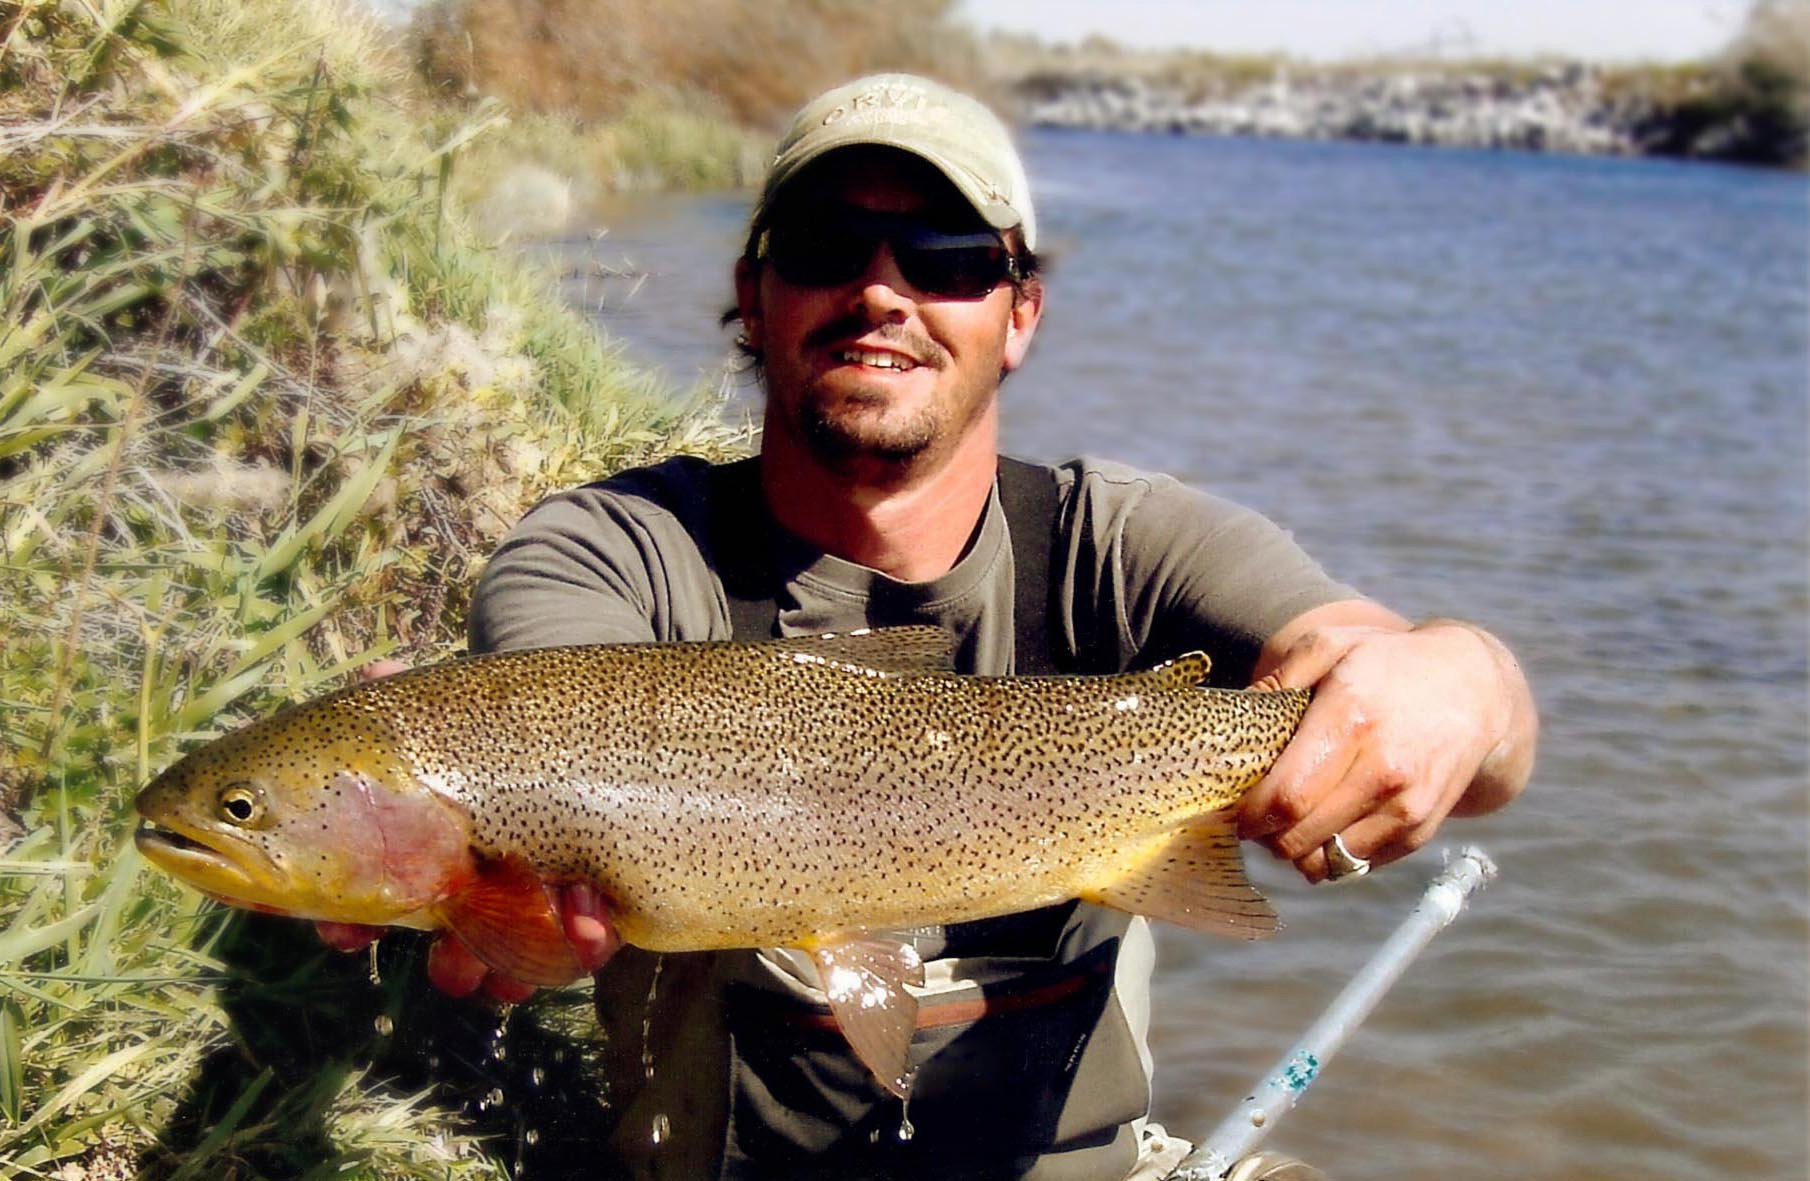 Fly fishing trip prices for henrys fork snake river for Owyhee river fly fishing